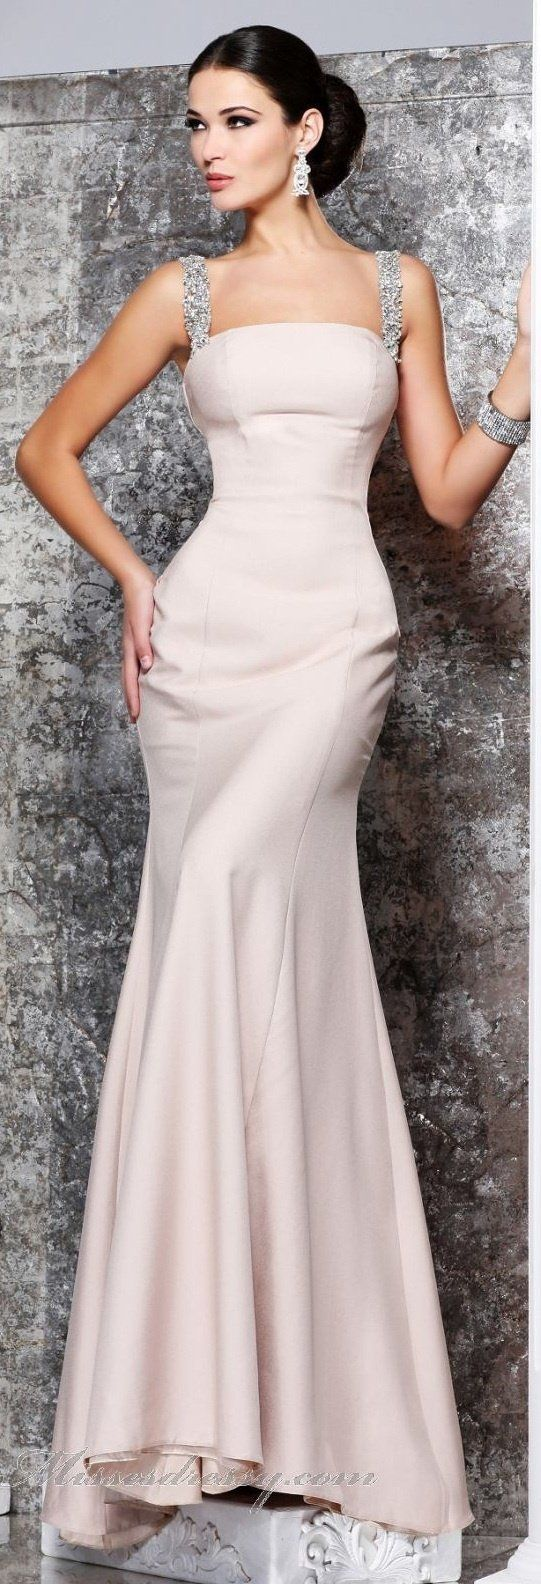 Mode-Stil der Abendkleider 2013 - Latest Fashion Dresses Online